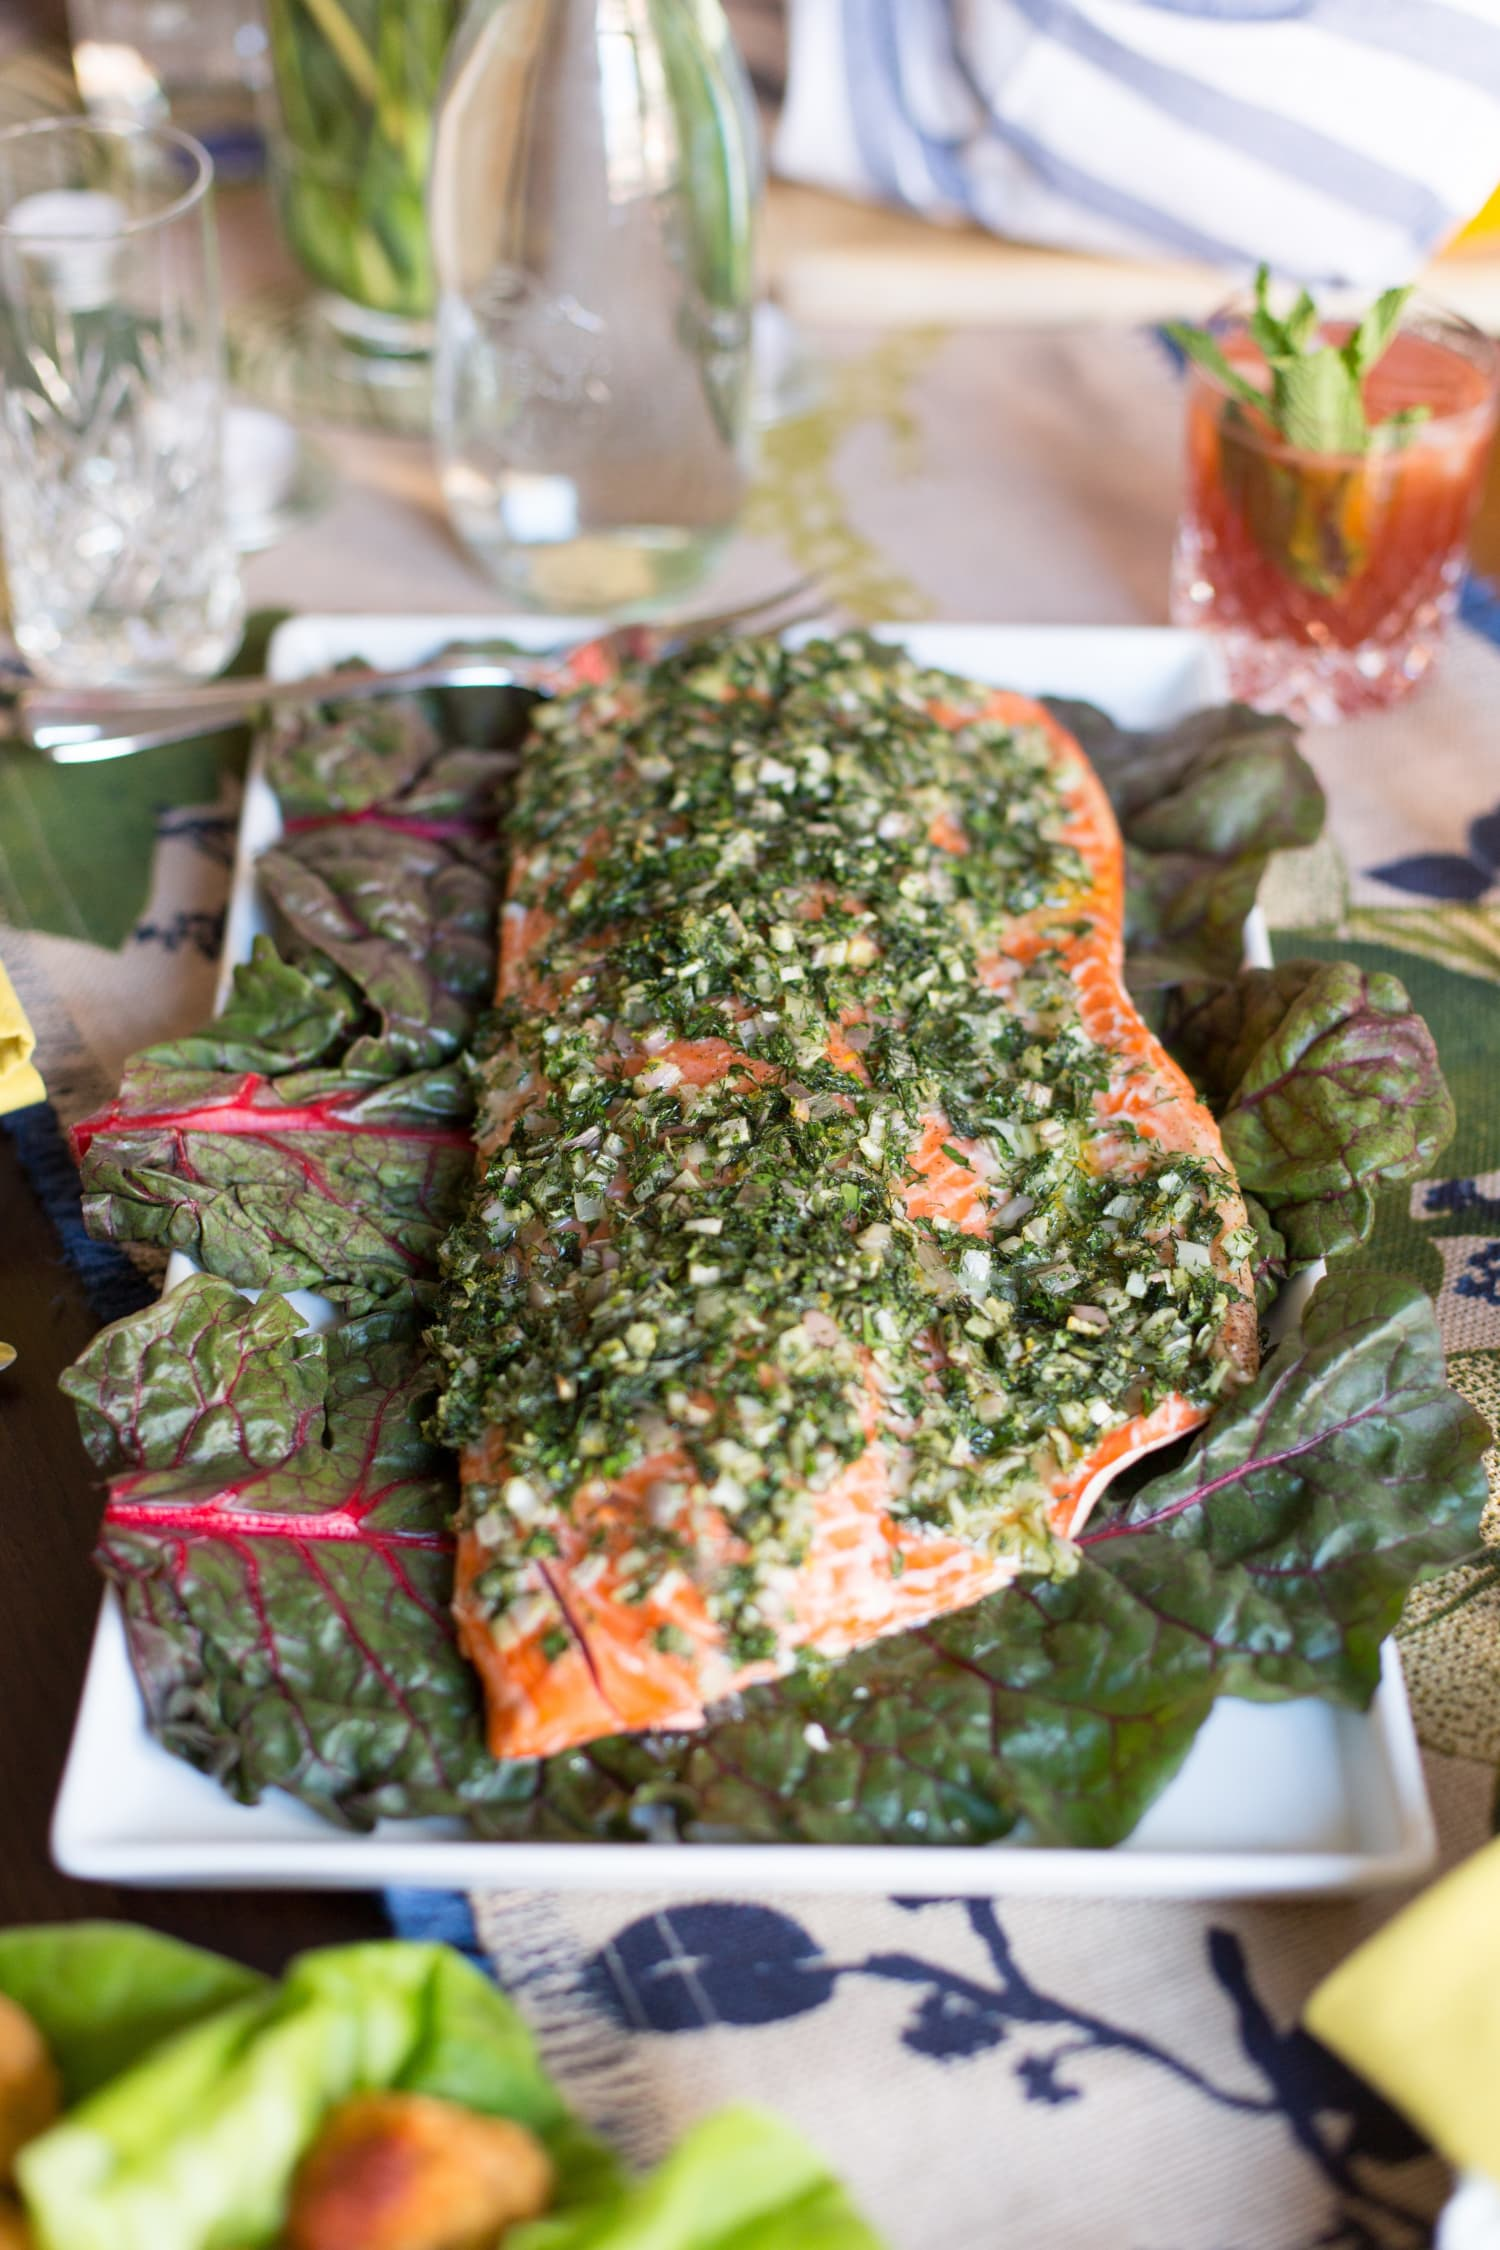 Recipe: Foolproof Salmon Baked with Olive Oil & Herbs